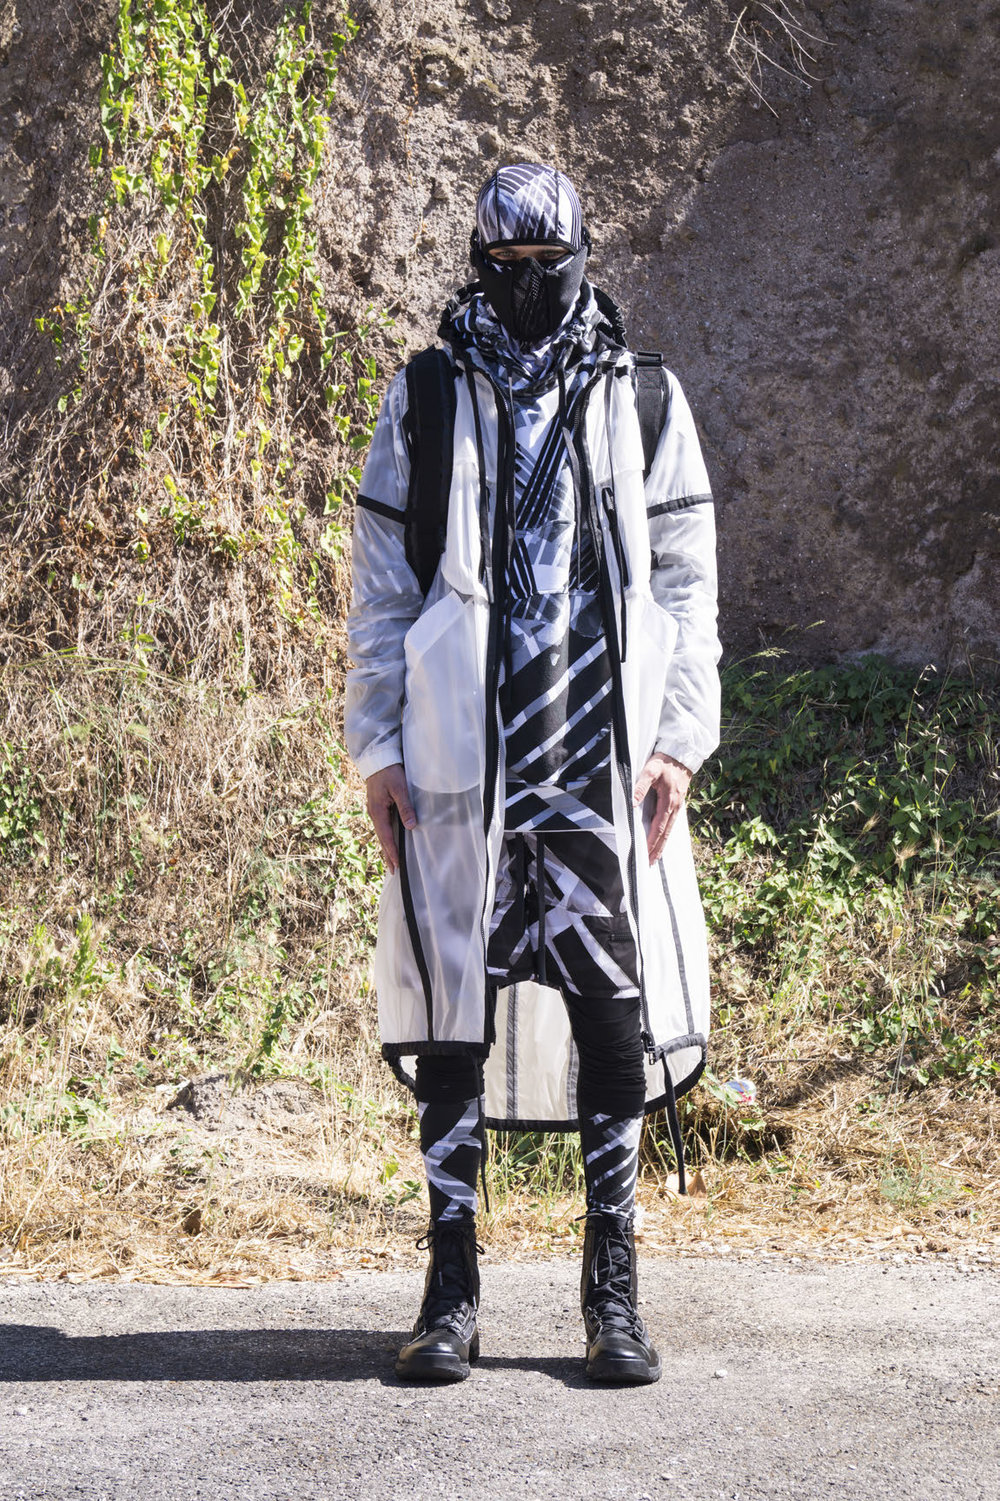 GALLSS18_UNBORNSURVIVAL_LOOKBOOK_MANRED (3)_Page_12.jpg